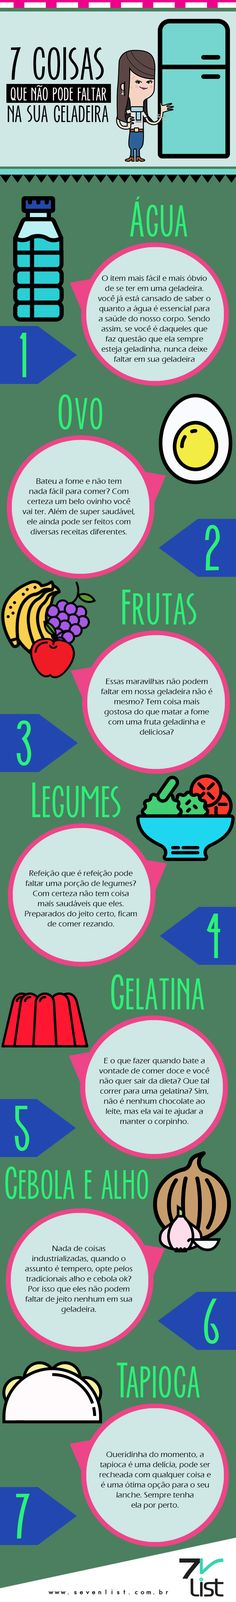 Diet plan for weight loss fat loss supplements,loss of weight online weight loss programs,tops weight loss weight control. Nutrition Tips, Diet Tips, Diet Recipes, Best Diet Foods, Best Diets, Alcohol Diet, 2 Week Diet Plan, Menu Dieta, Fit Girls Guide